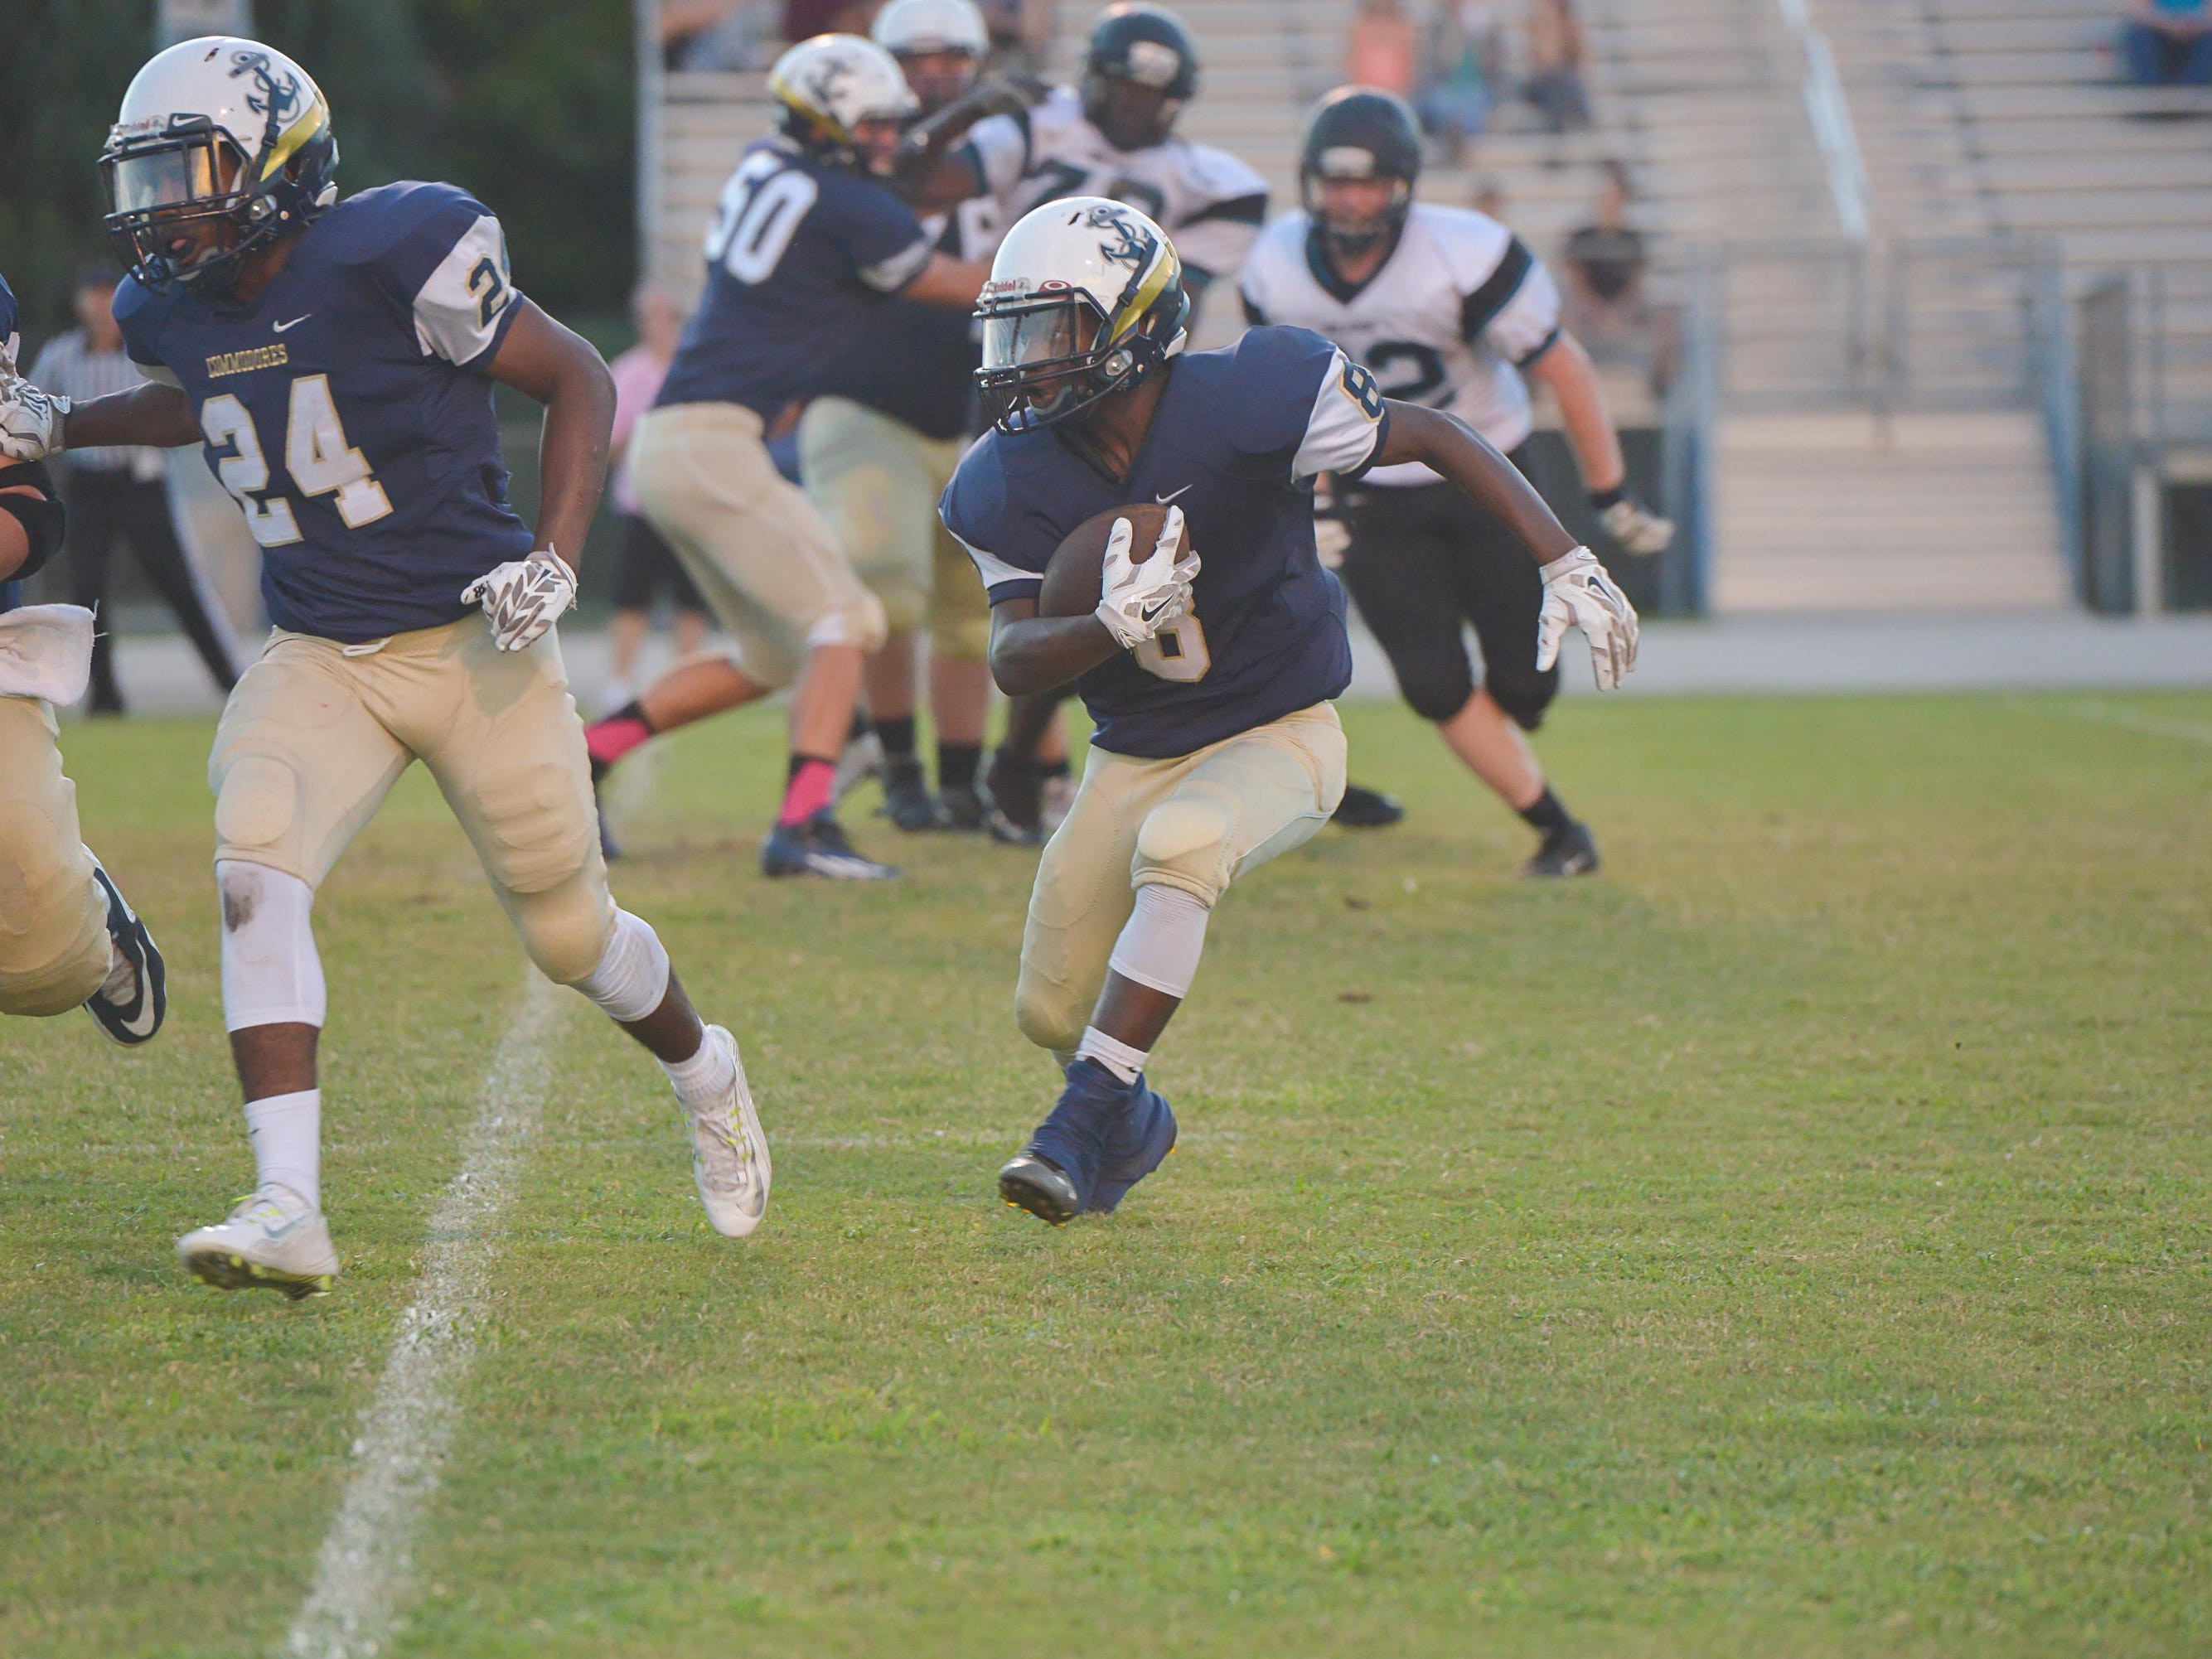 Eau Gallie visited Jensen Beach in a Class 6A, District 14 game on Friday night.